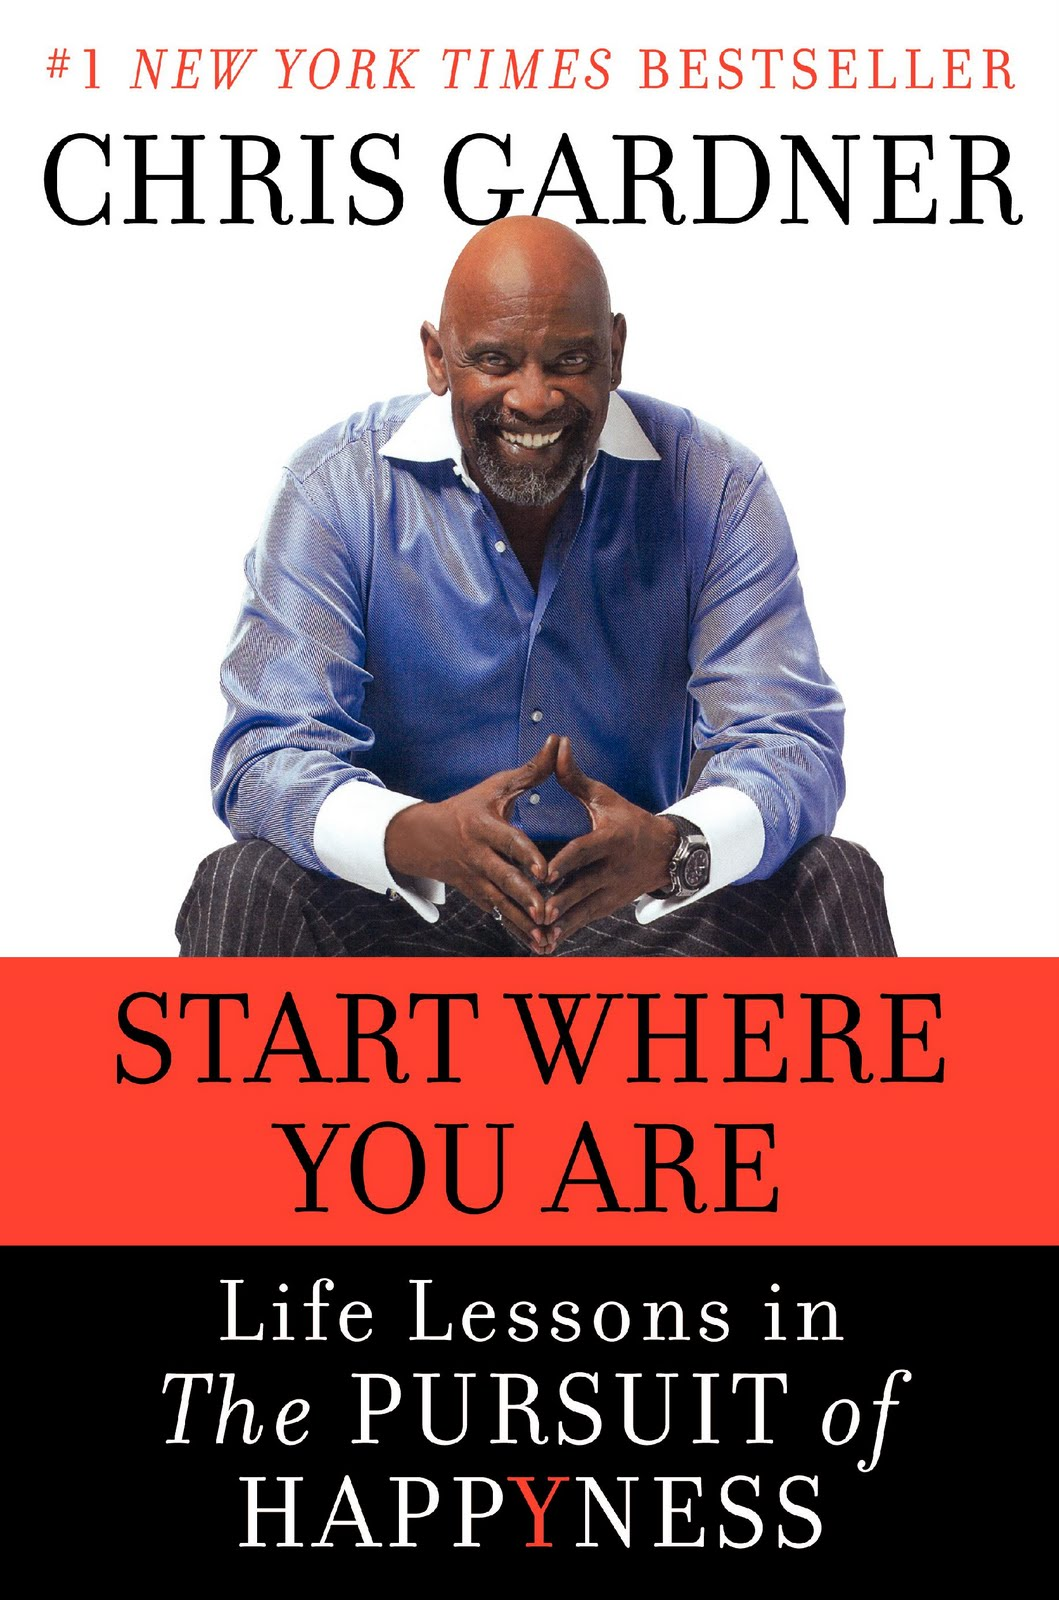 BadskiBlog: Book Review: Start Where You Are